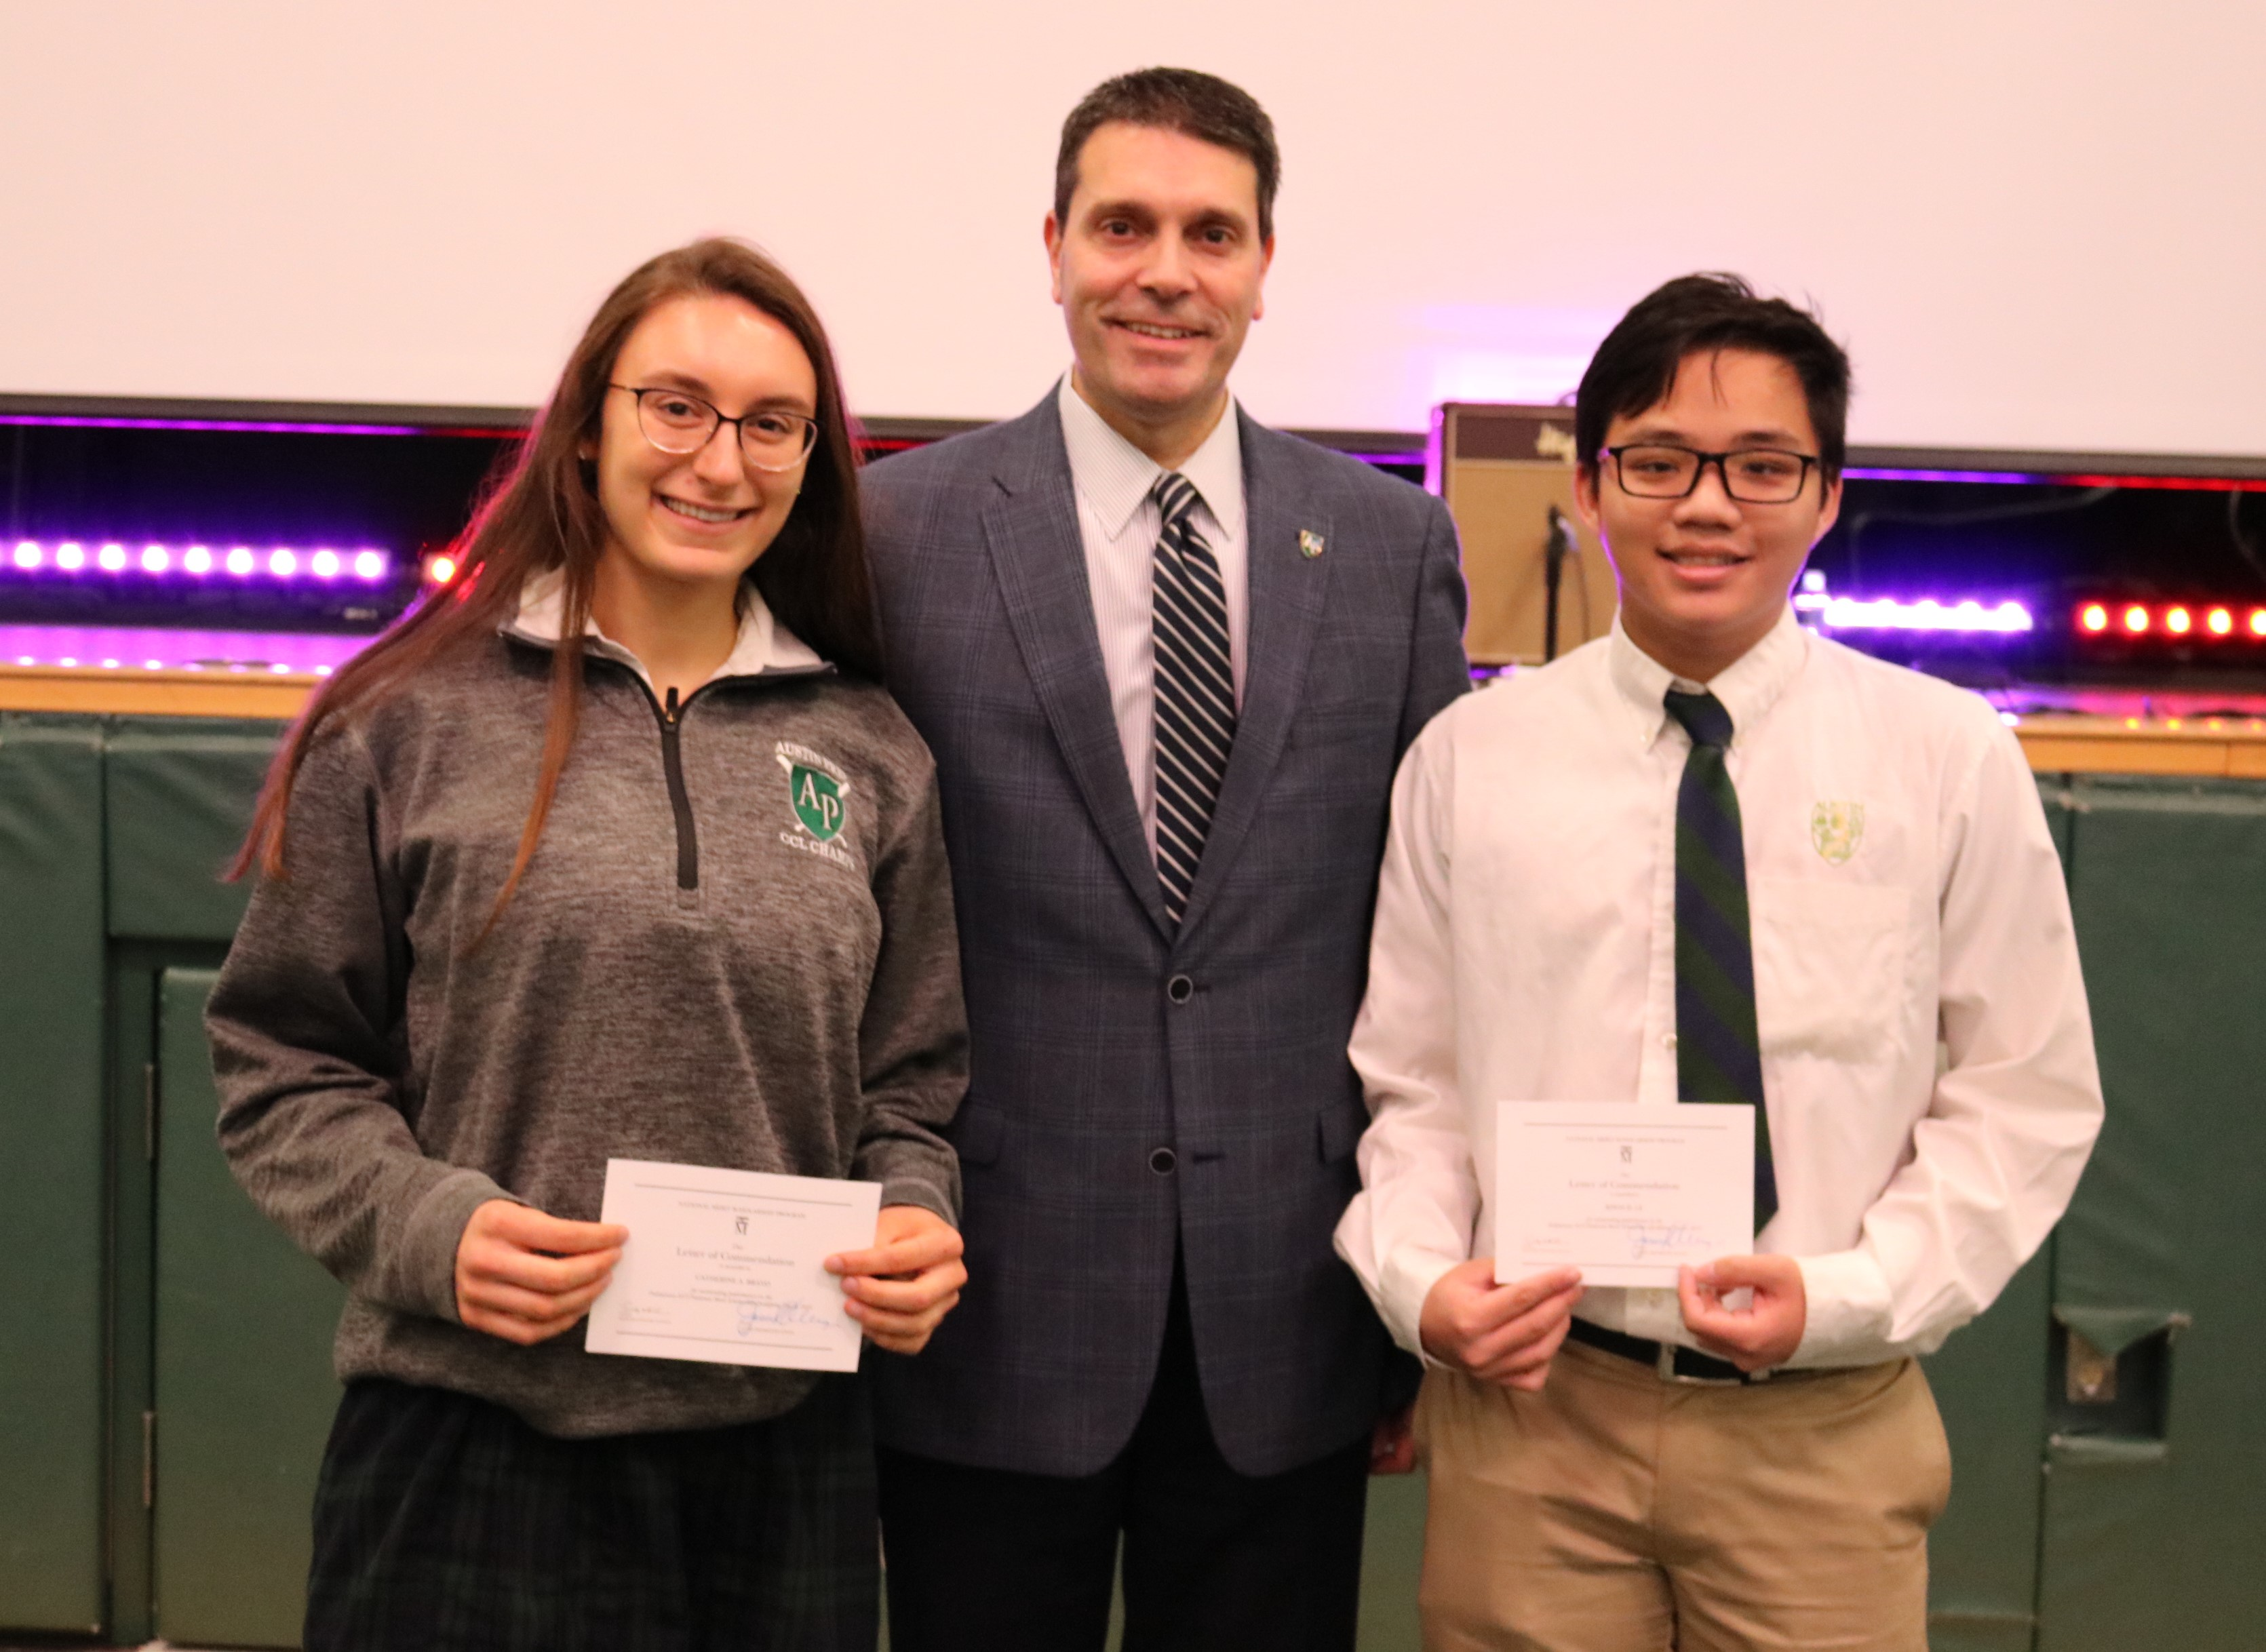 Commended students at the national merit scholarship program